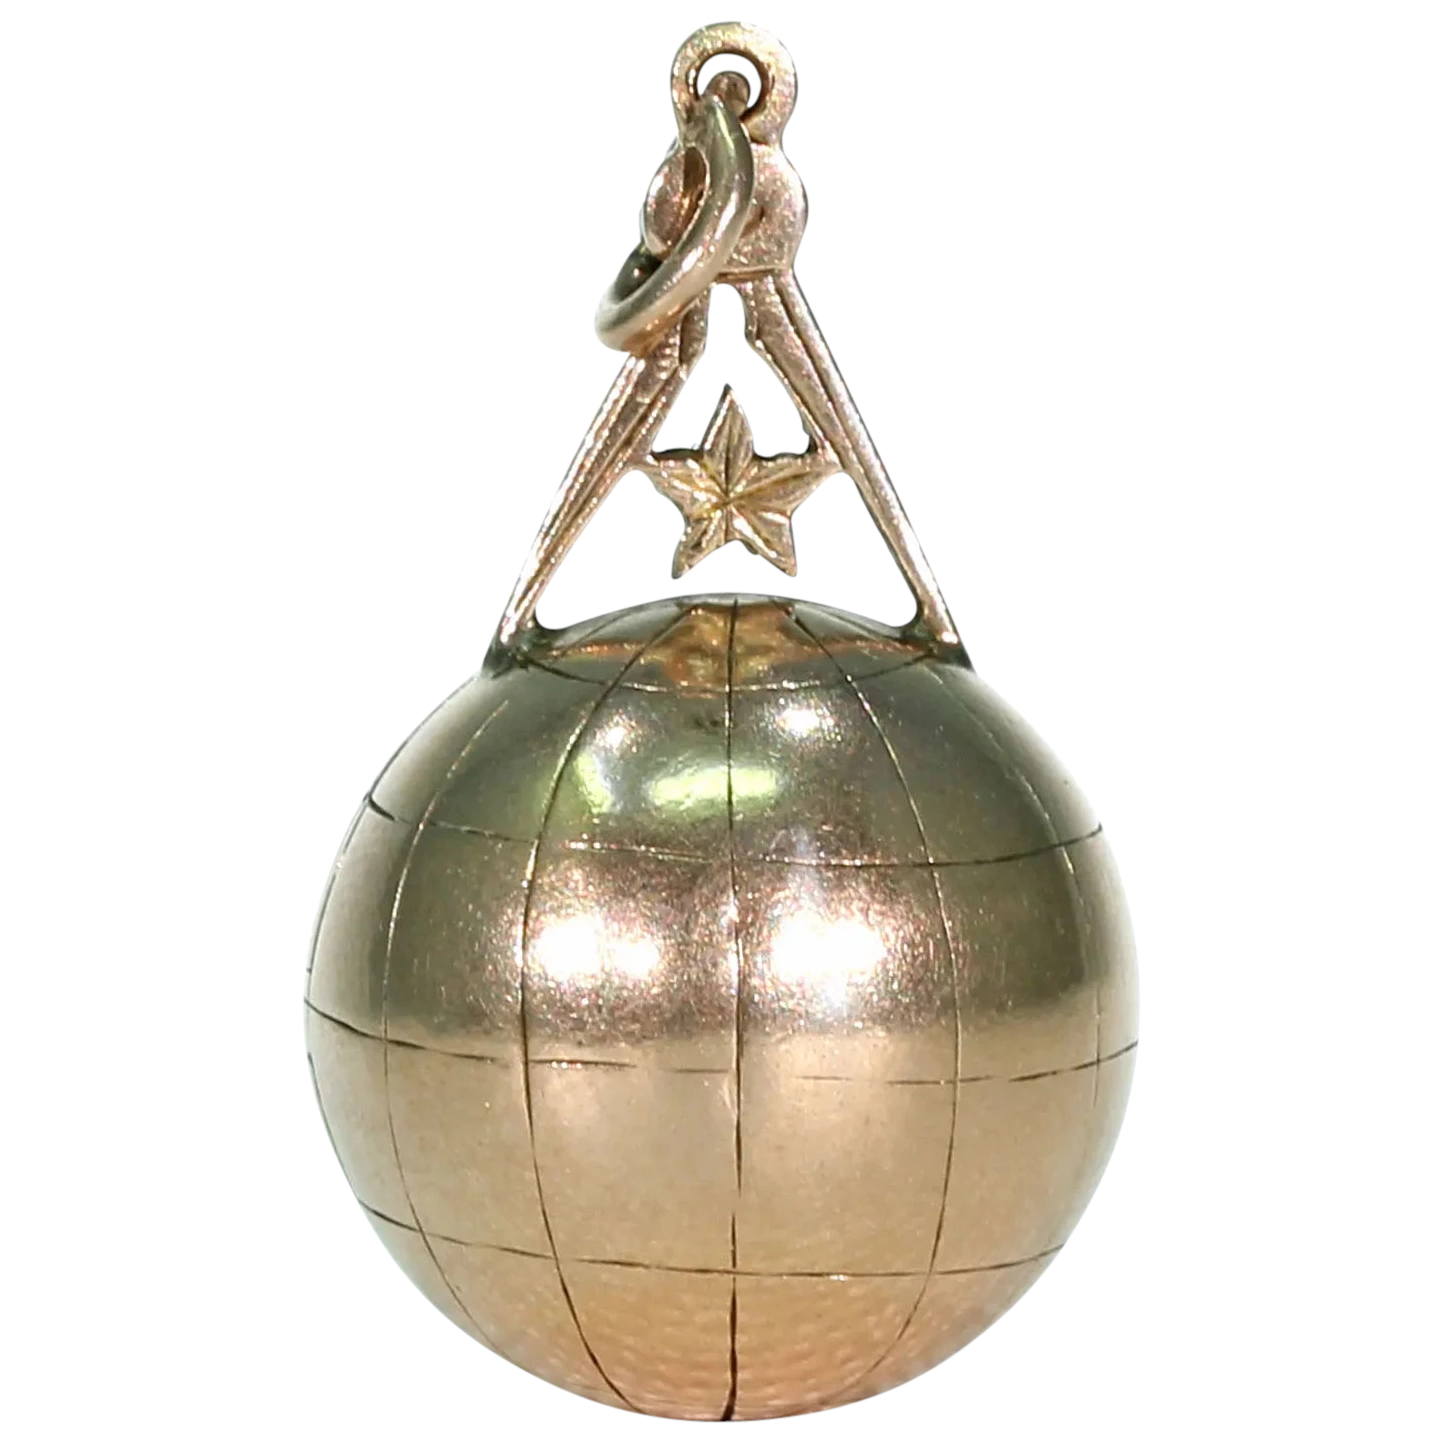 Gold Victorian Masonic Globe and Compass Fob Pendant